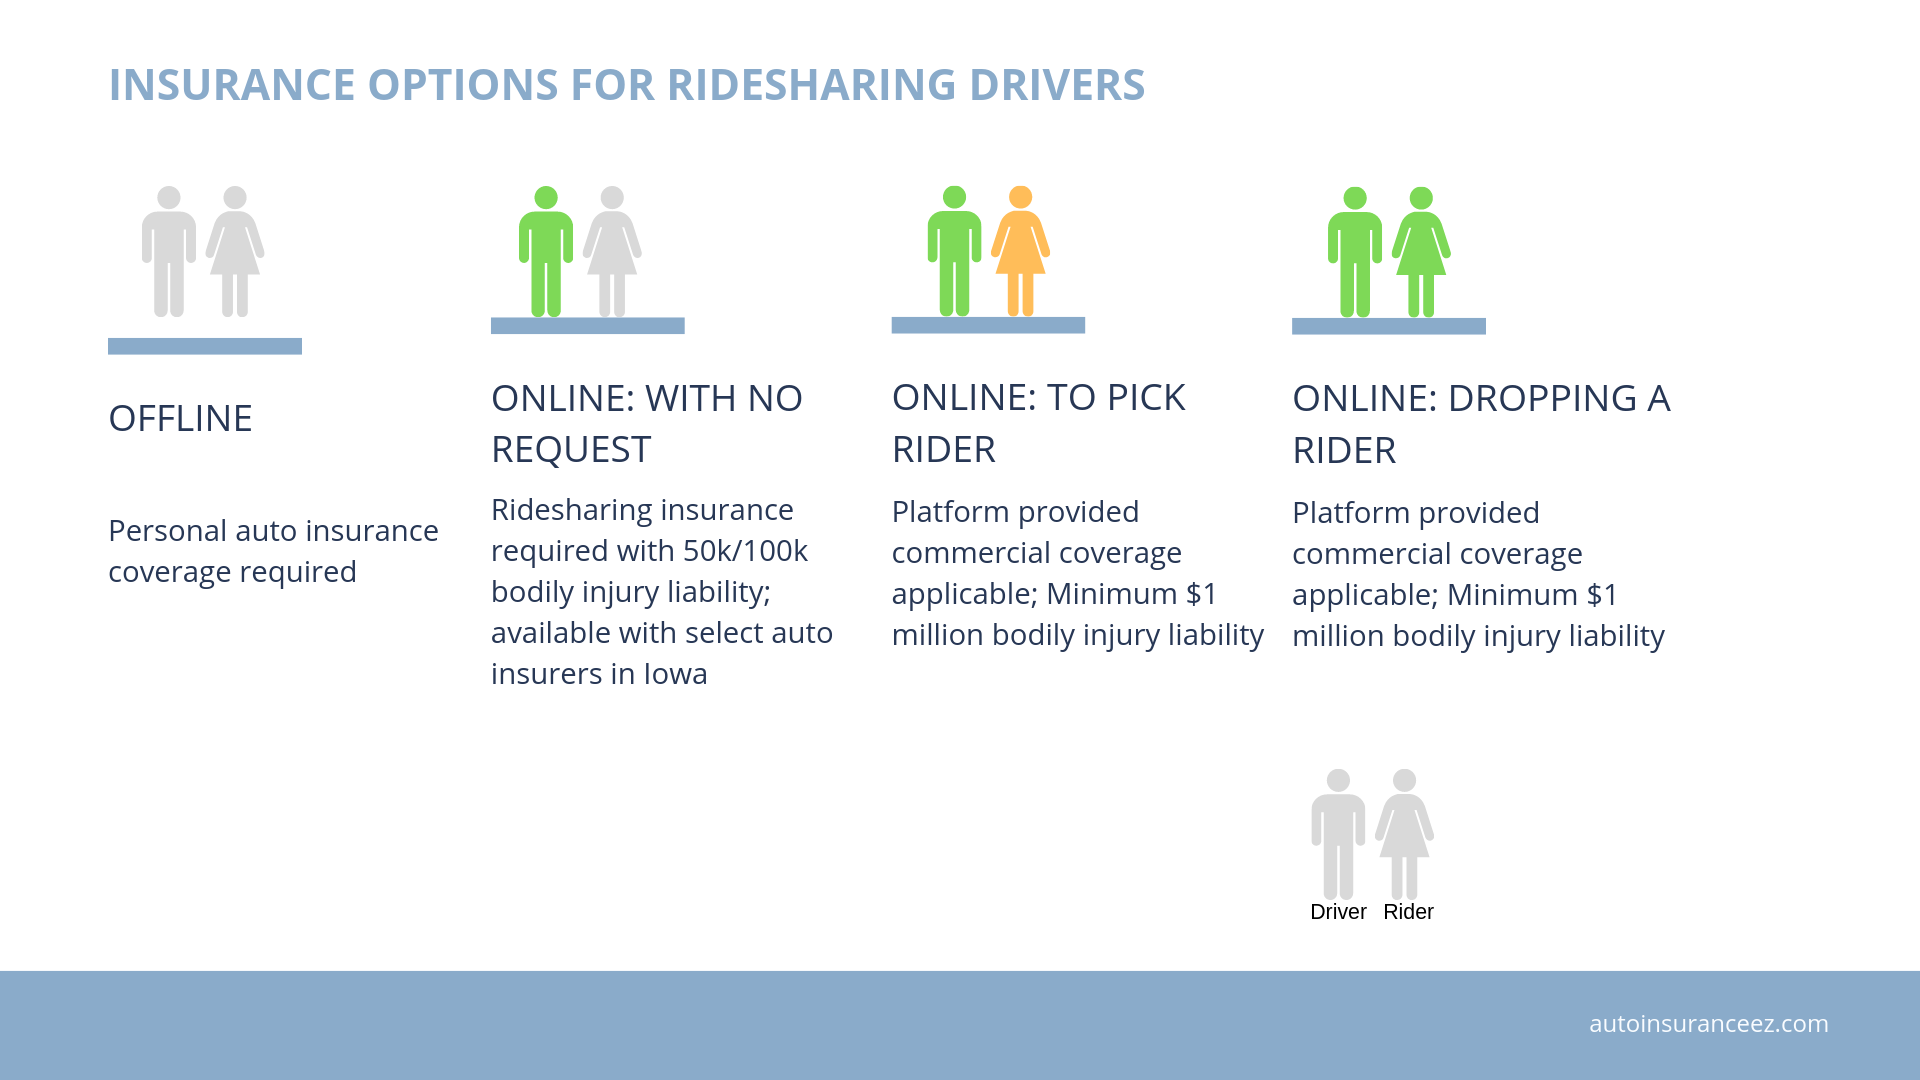 Ridesharing insurance options in Iowa